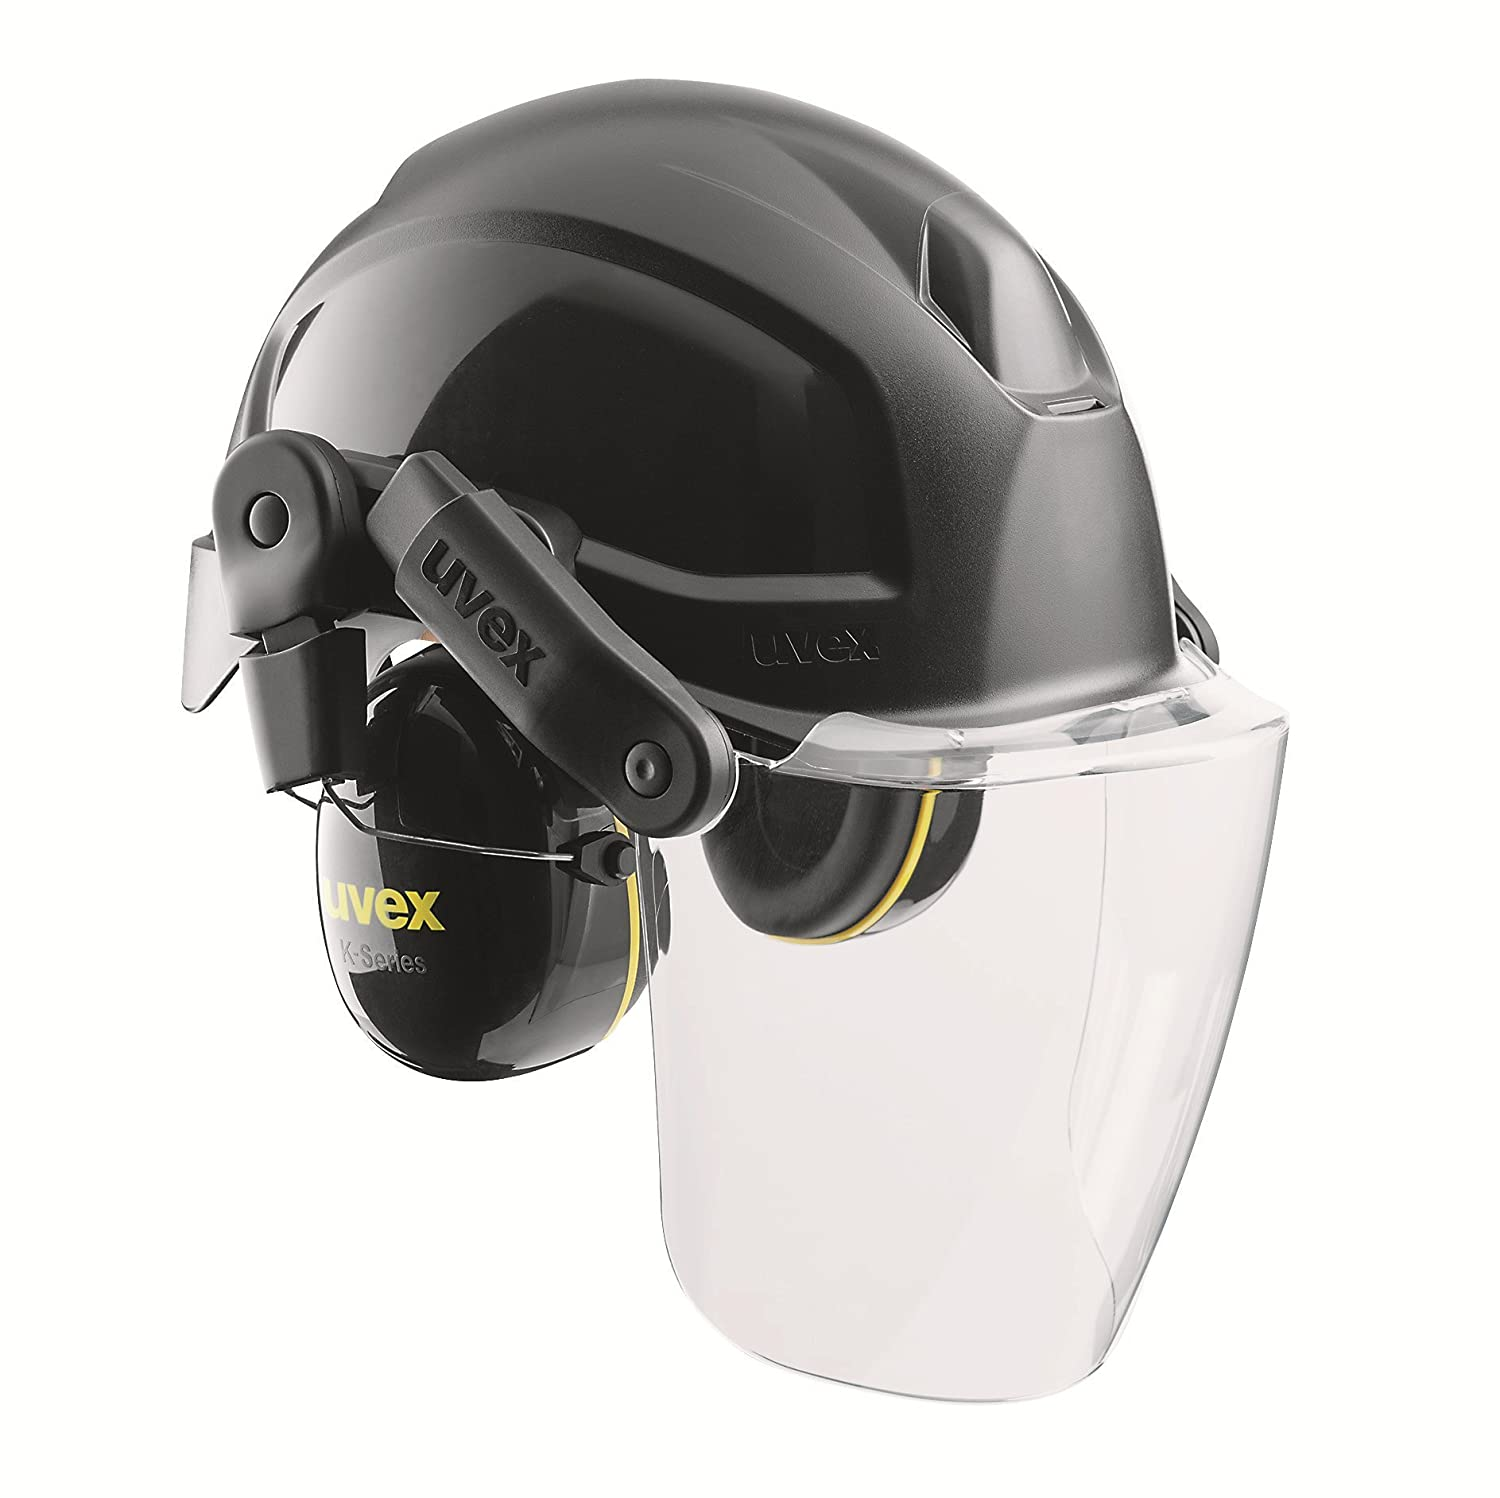 uvex Helmet system pheos consisting of Protection helmet Visor and Hearing protection EN 397 Colour black